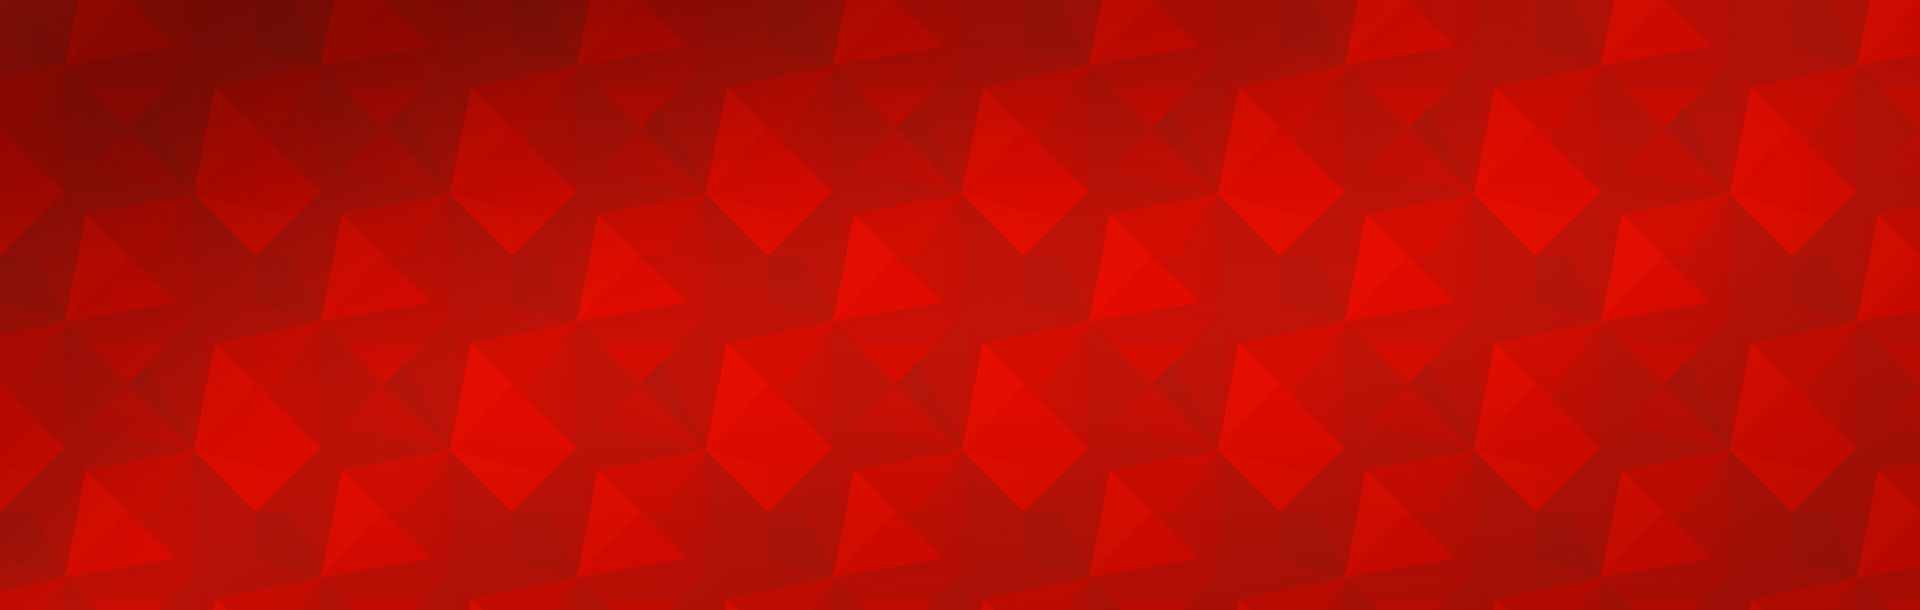 Slider-Backgrounds-Red